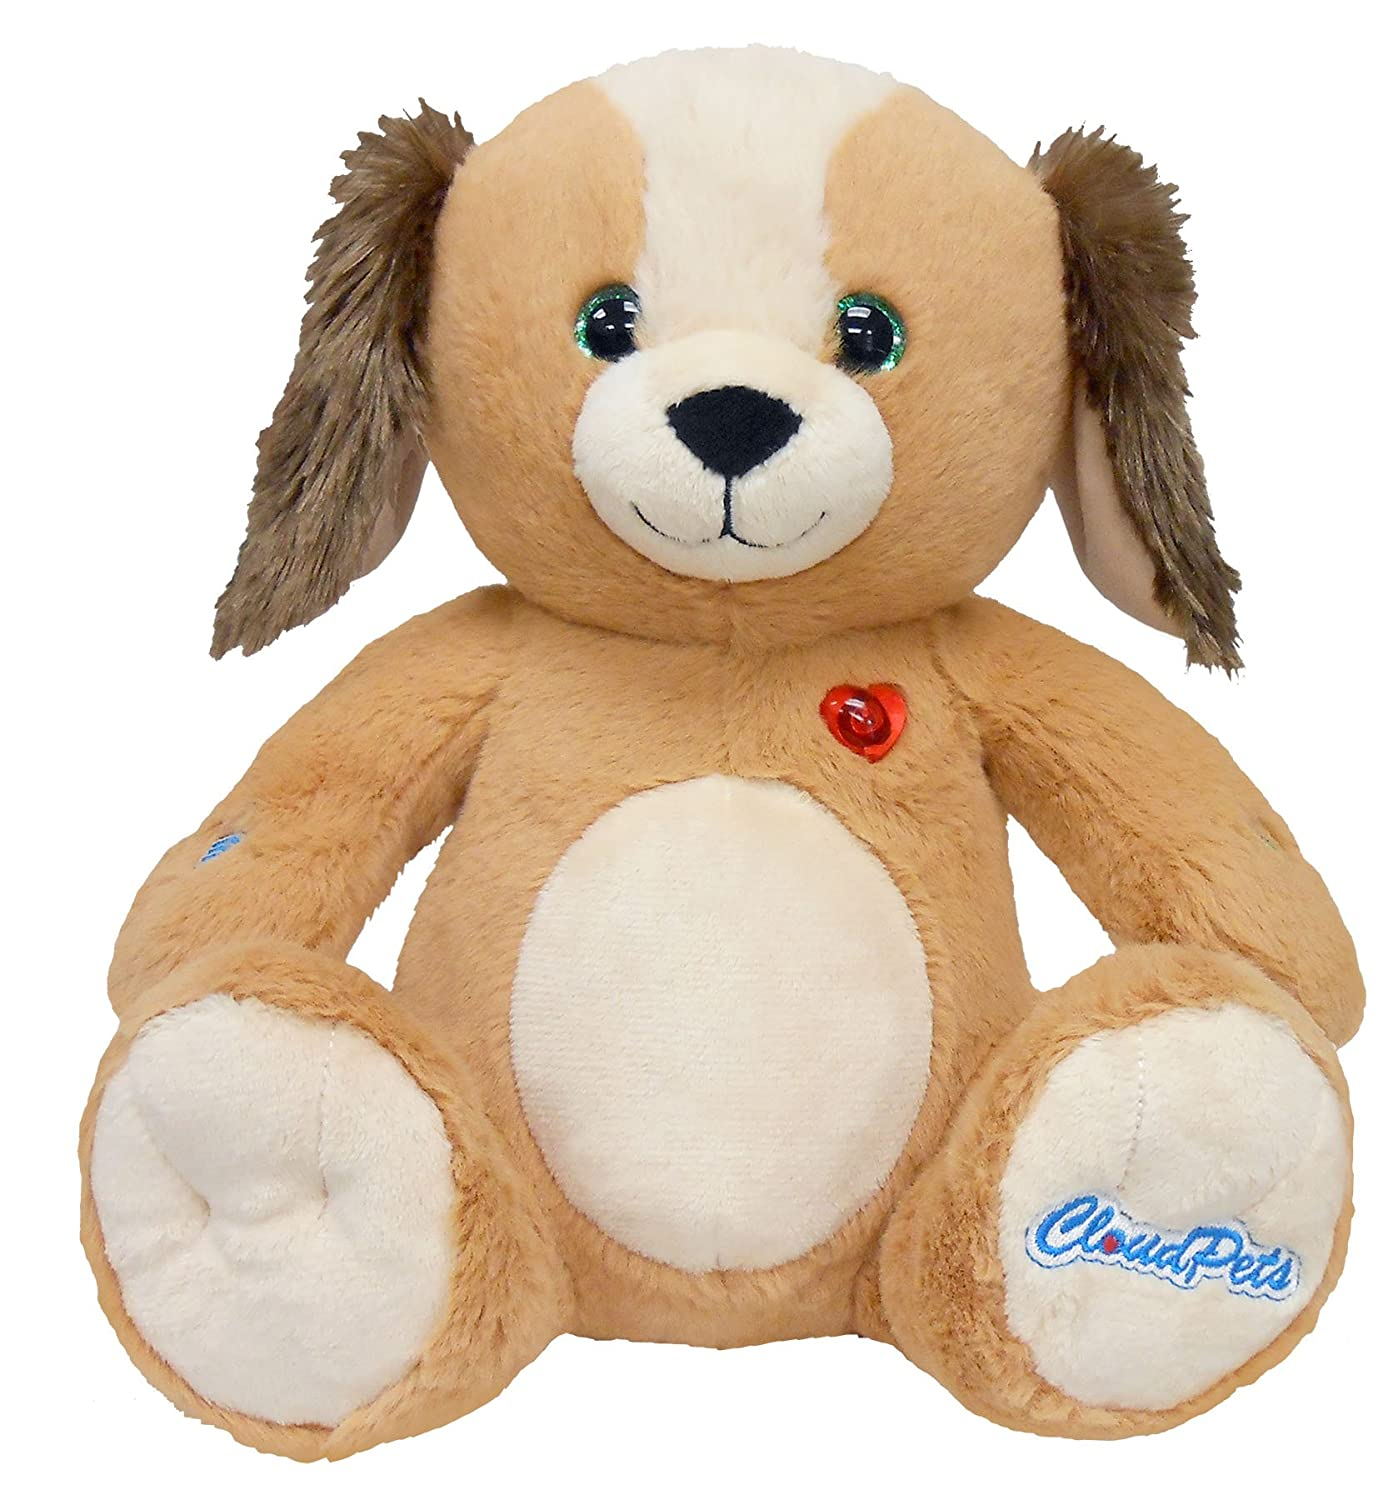 Amazon.com: CloudPets Talking Dog - The Huggable Pet to Keep in Touch  Through the Cloud, Recordable Stuffed Animal by CloudPets: Toys & Games